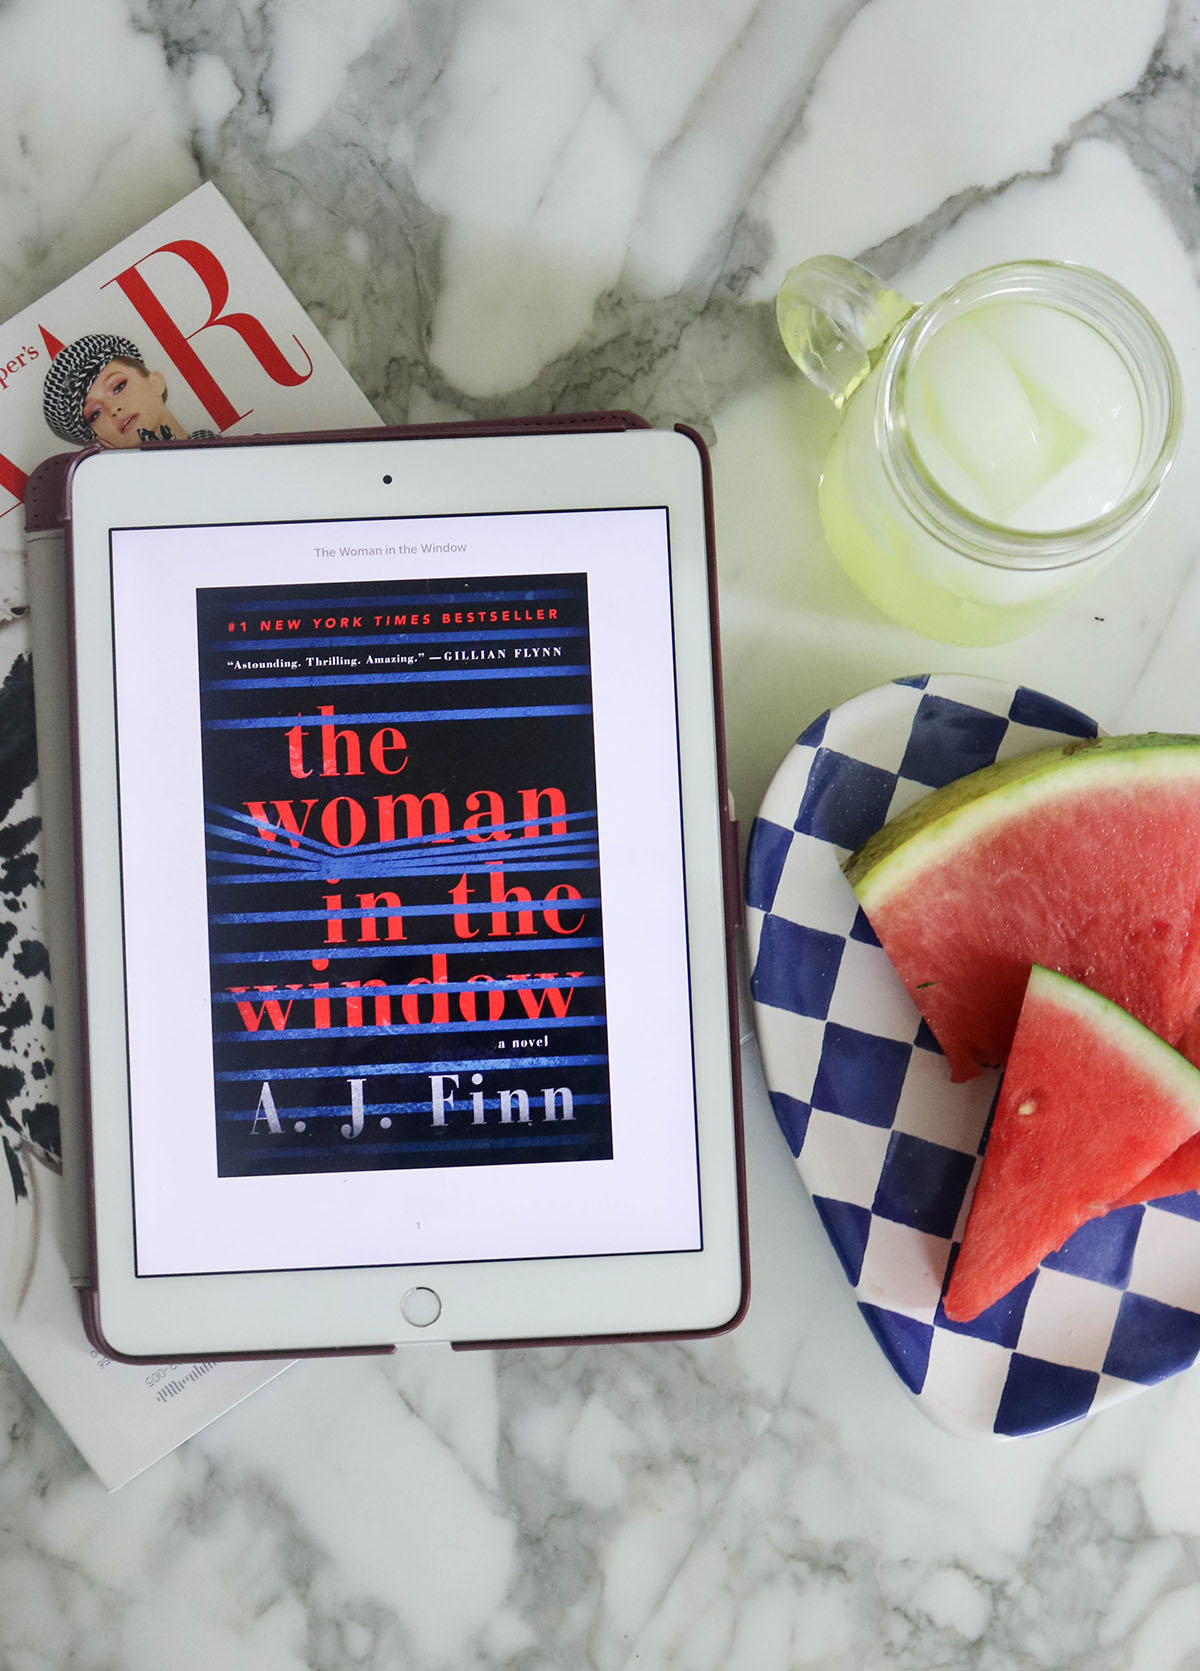 Page-Turner Summer Read I The Woman in the Window by A.J. Finn